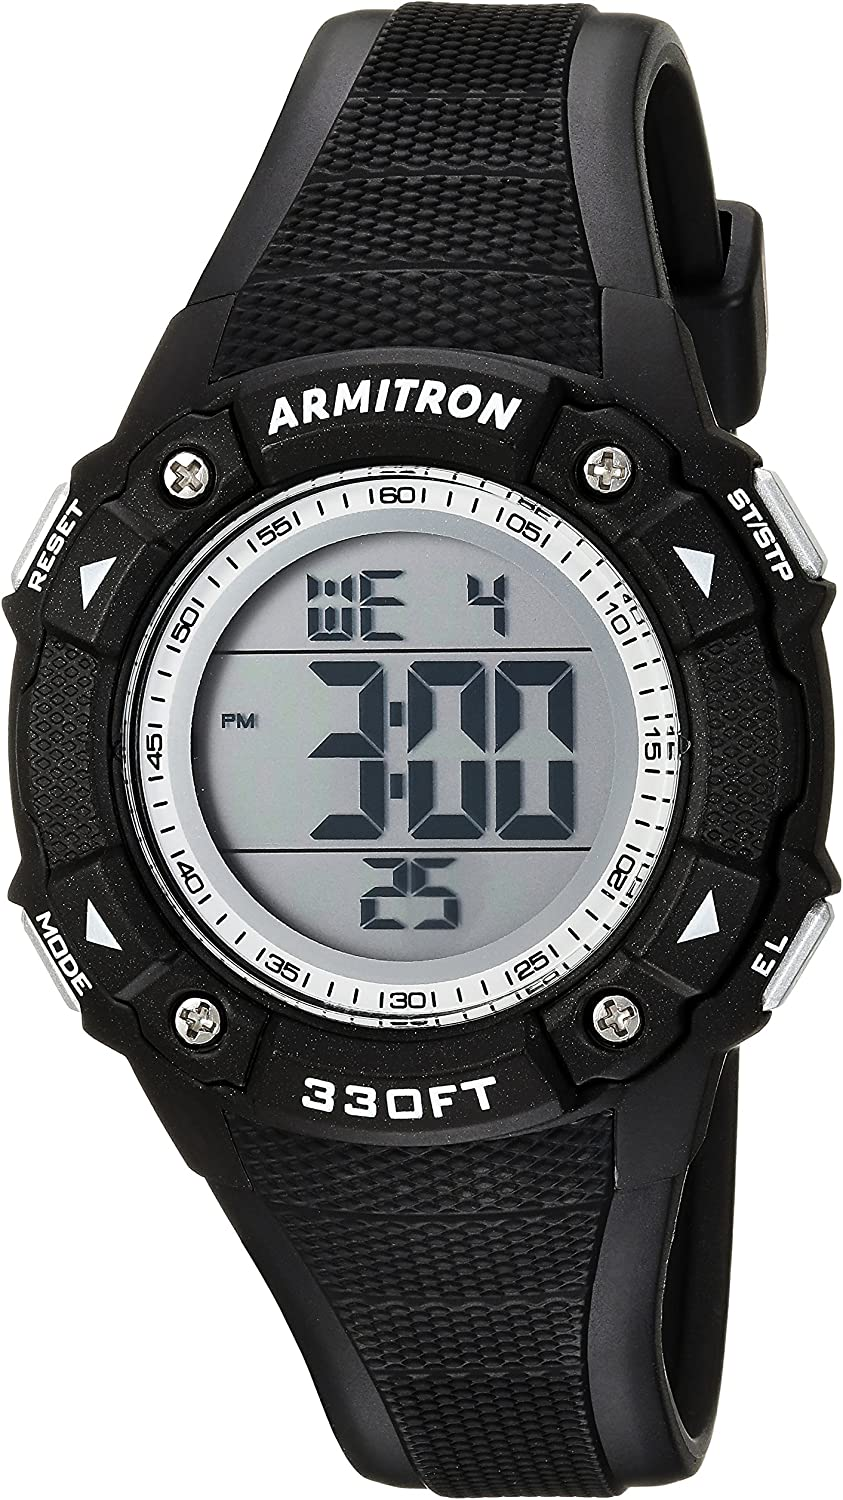 Armitron Sport Women s Digital Chronograph Teal Resin Strap Watch